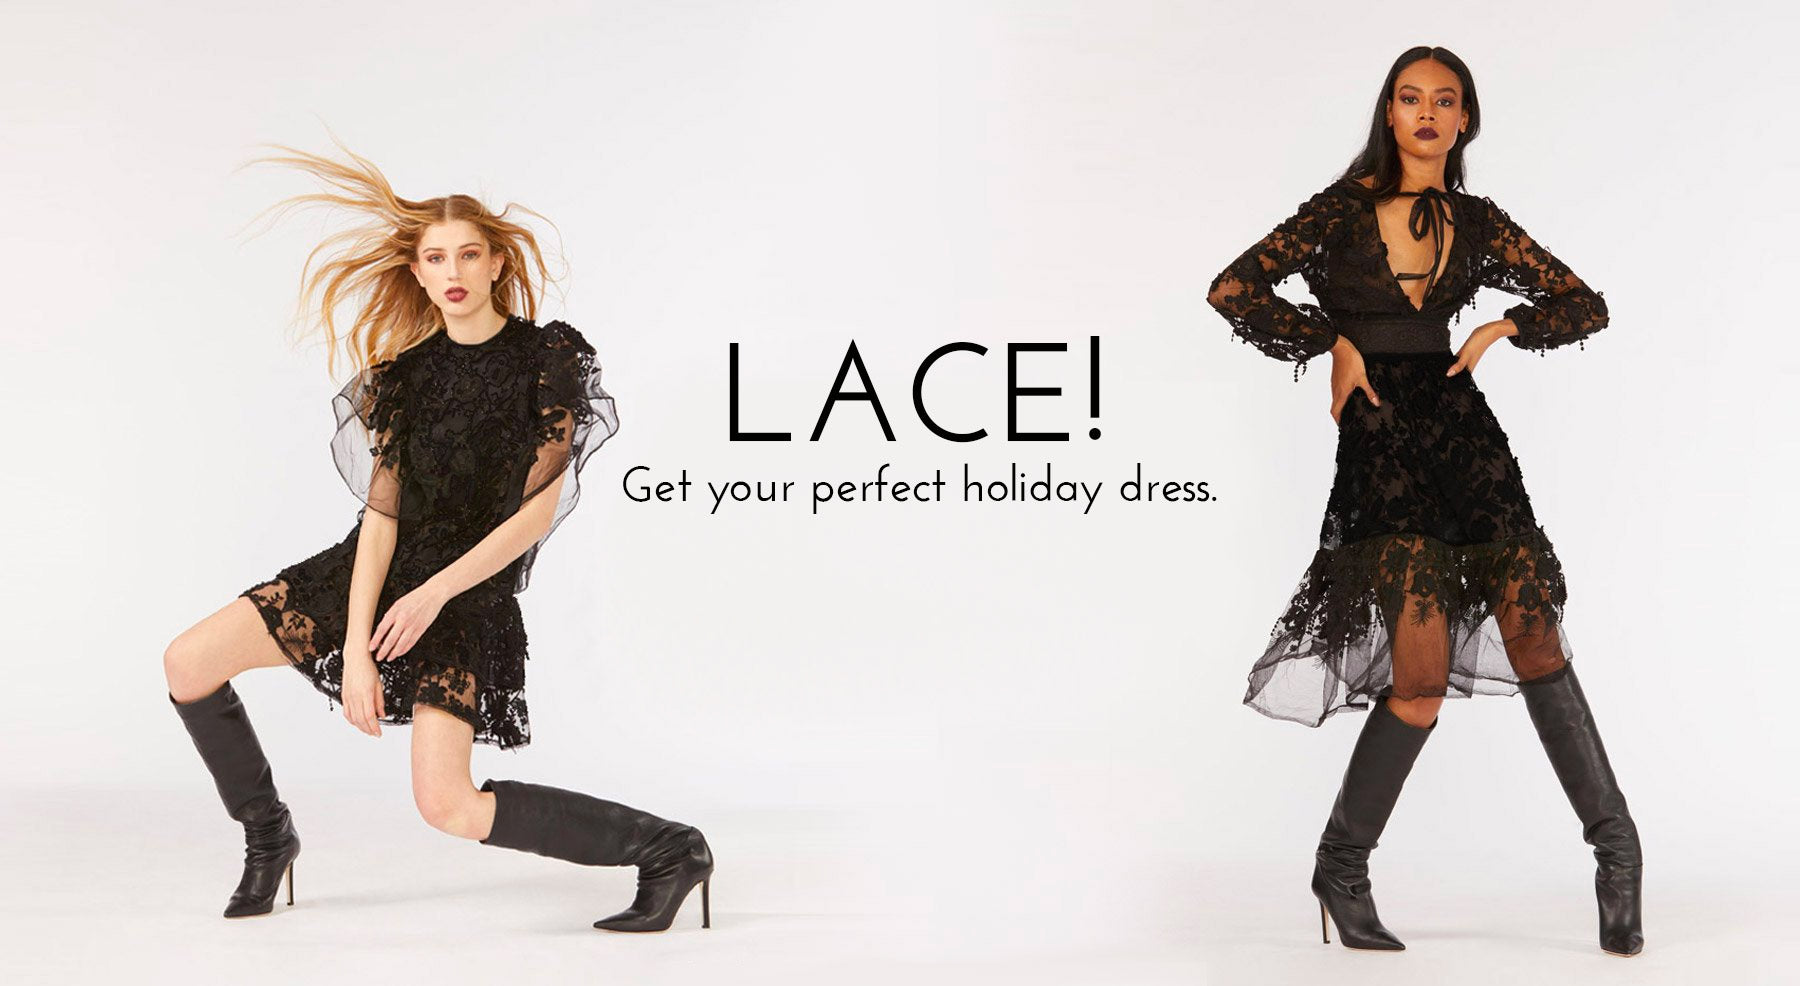 Lace! Get your perfect holiday dress.